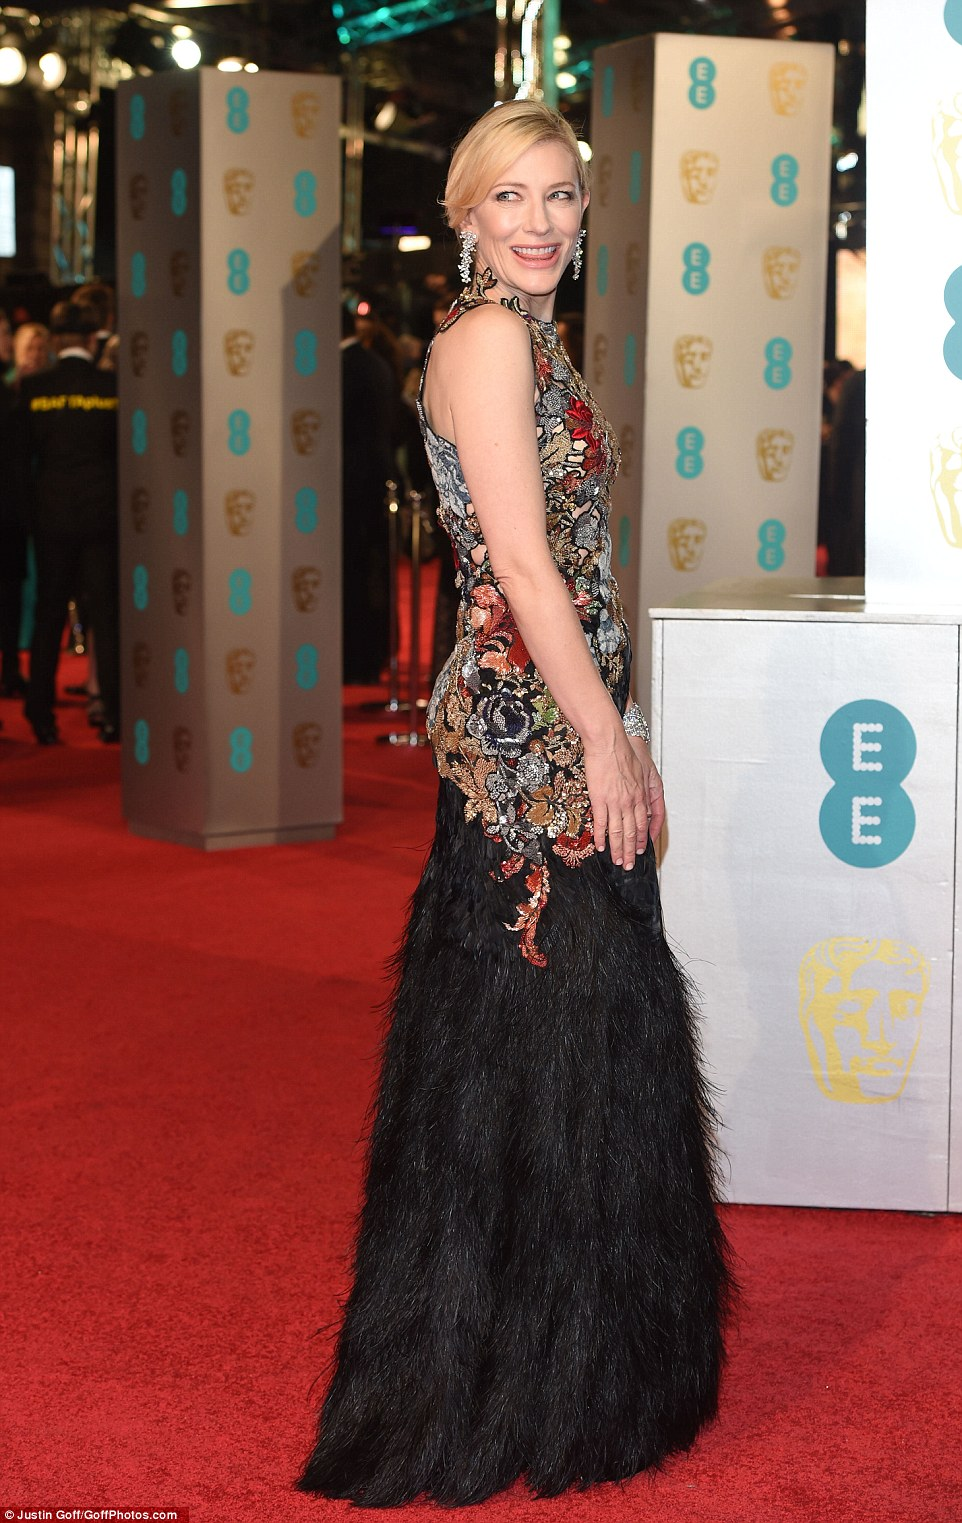 Cate Blanchett dazzles in Alexander McQueen at the BAFTAs 2016